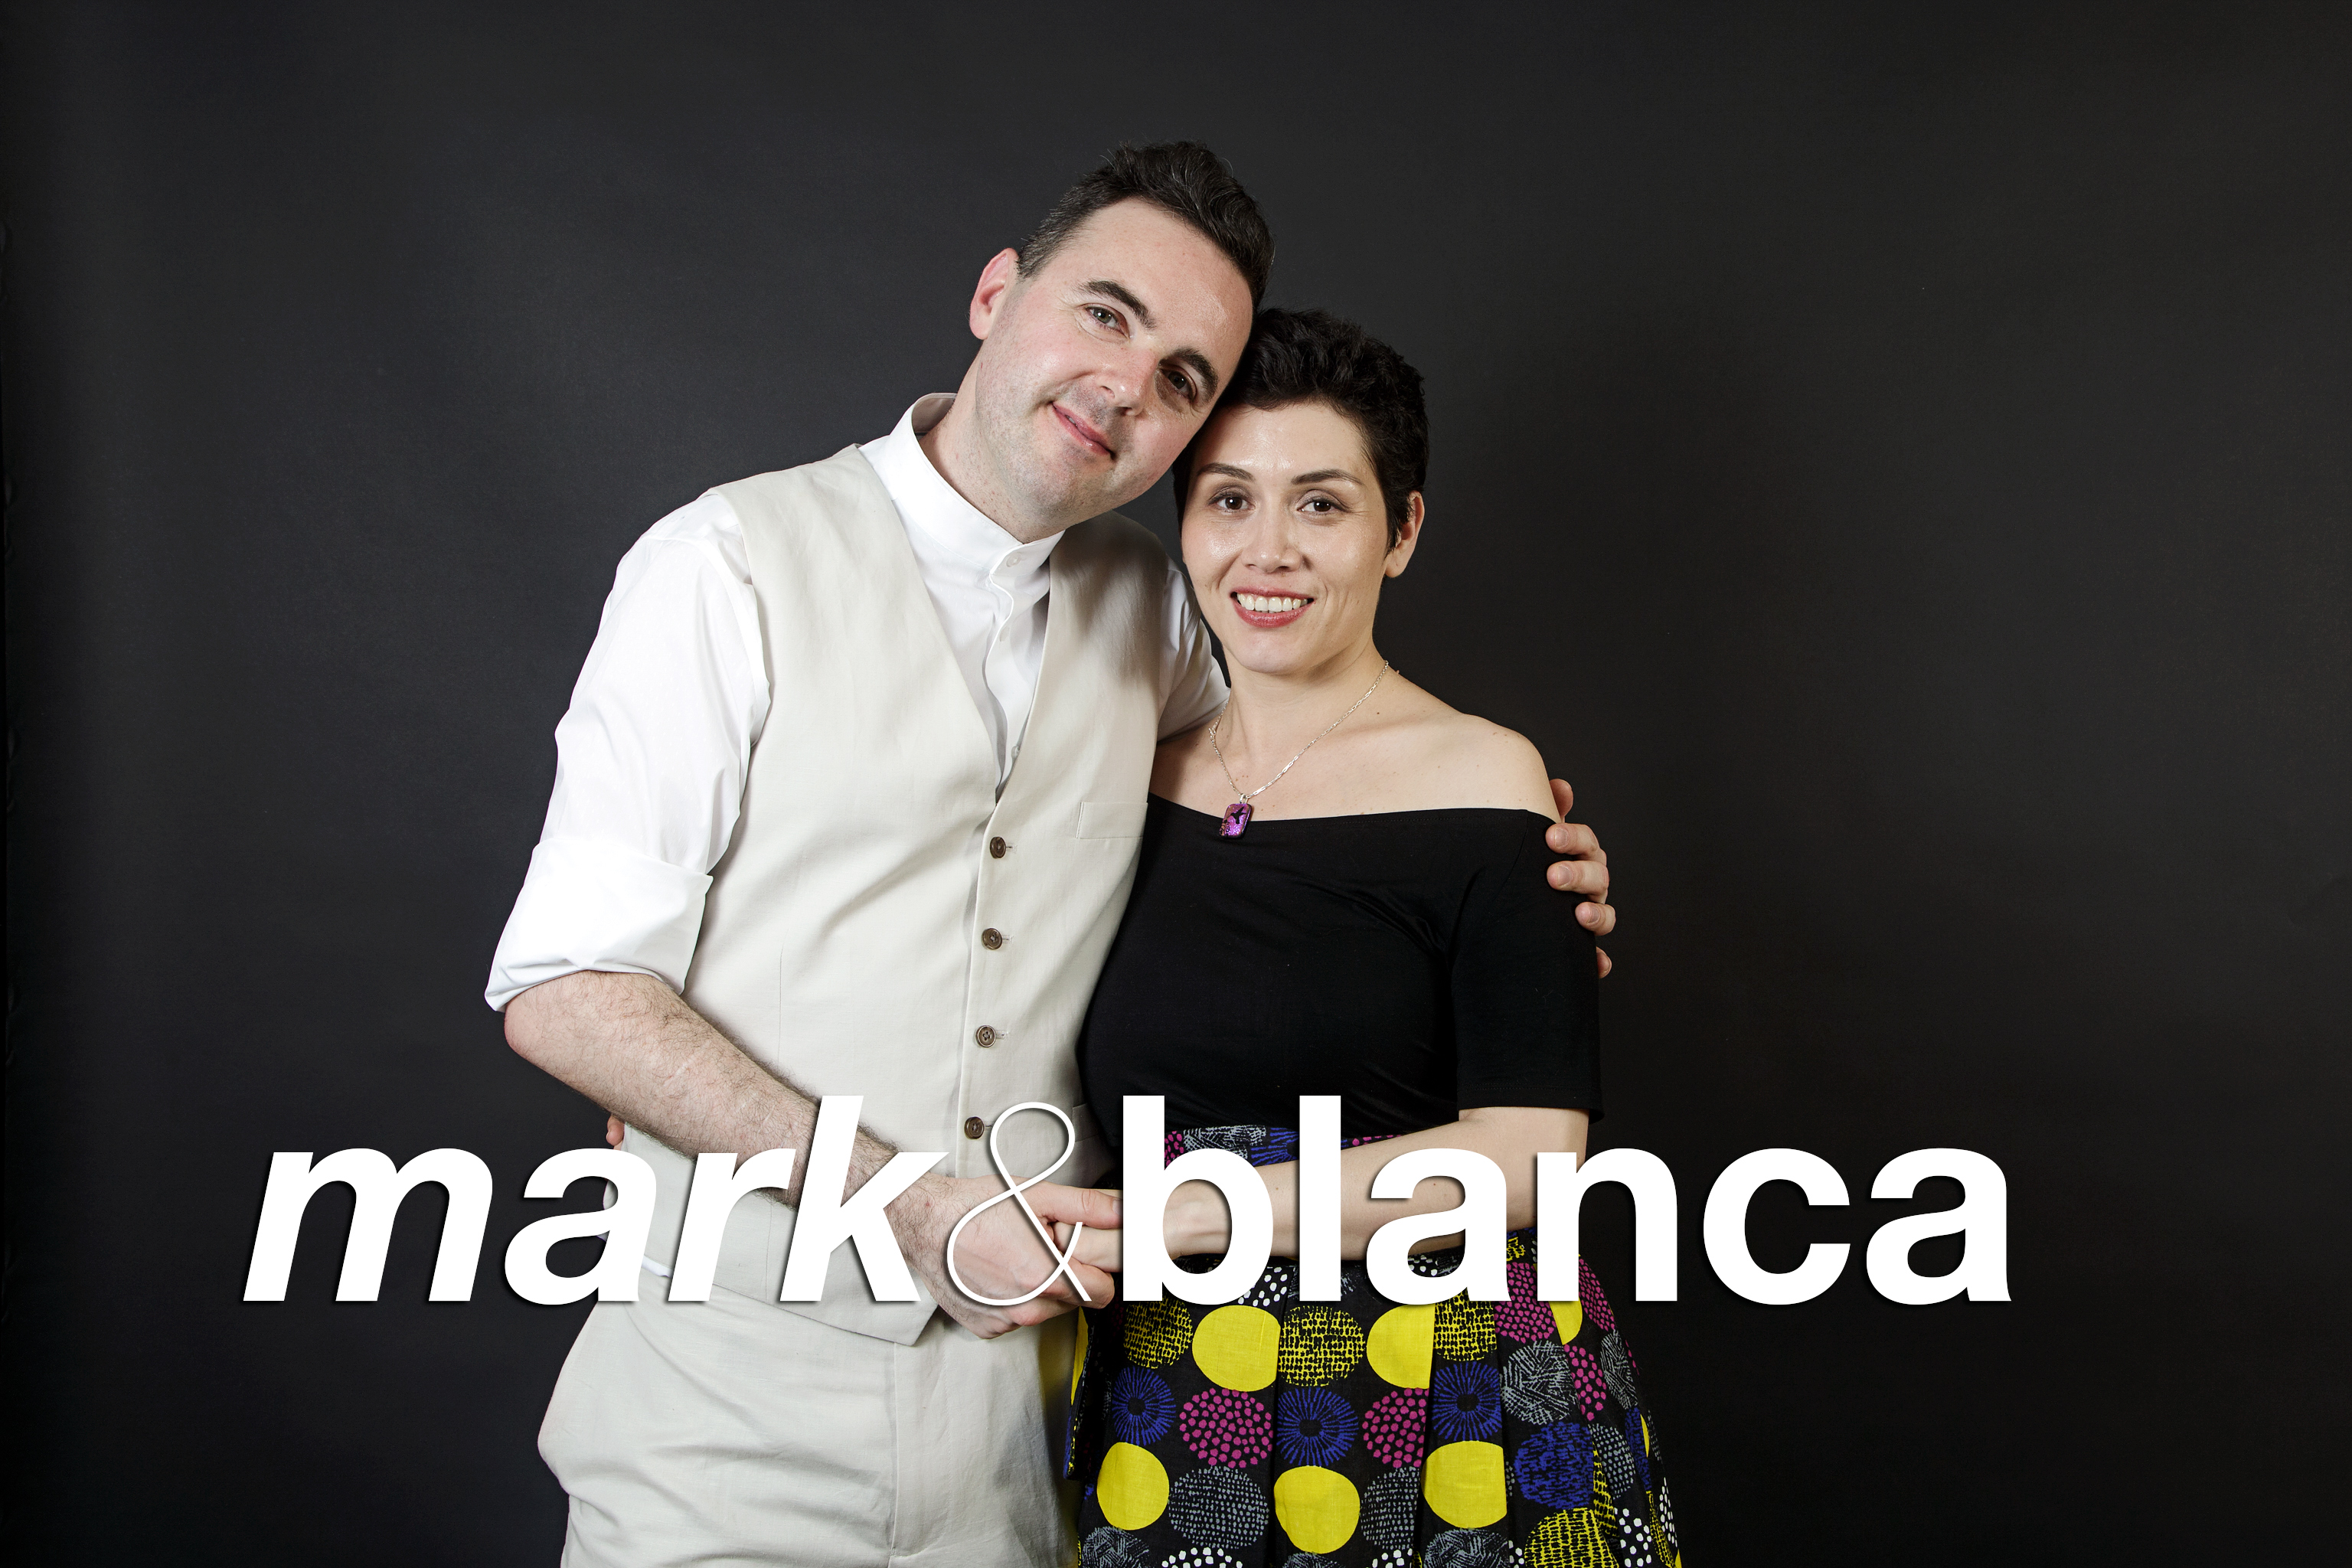 glitterguts photo booth photos from mark and blanca's beautiful wedding at dovetail brewery chicago, july 2018